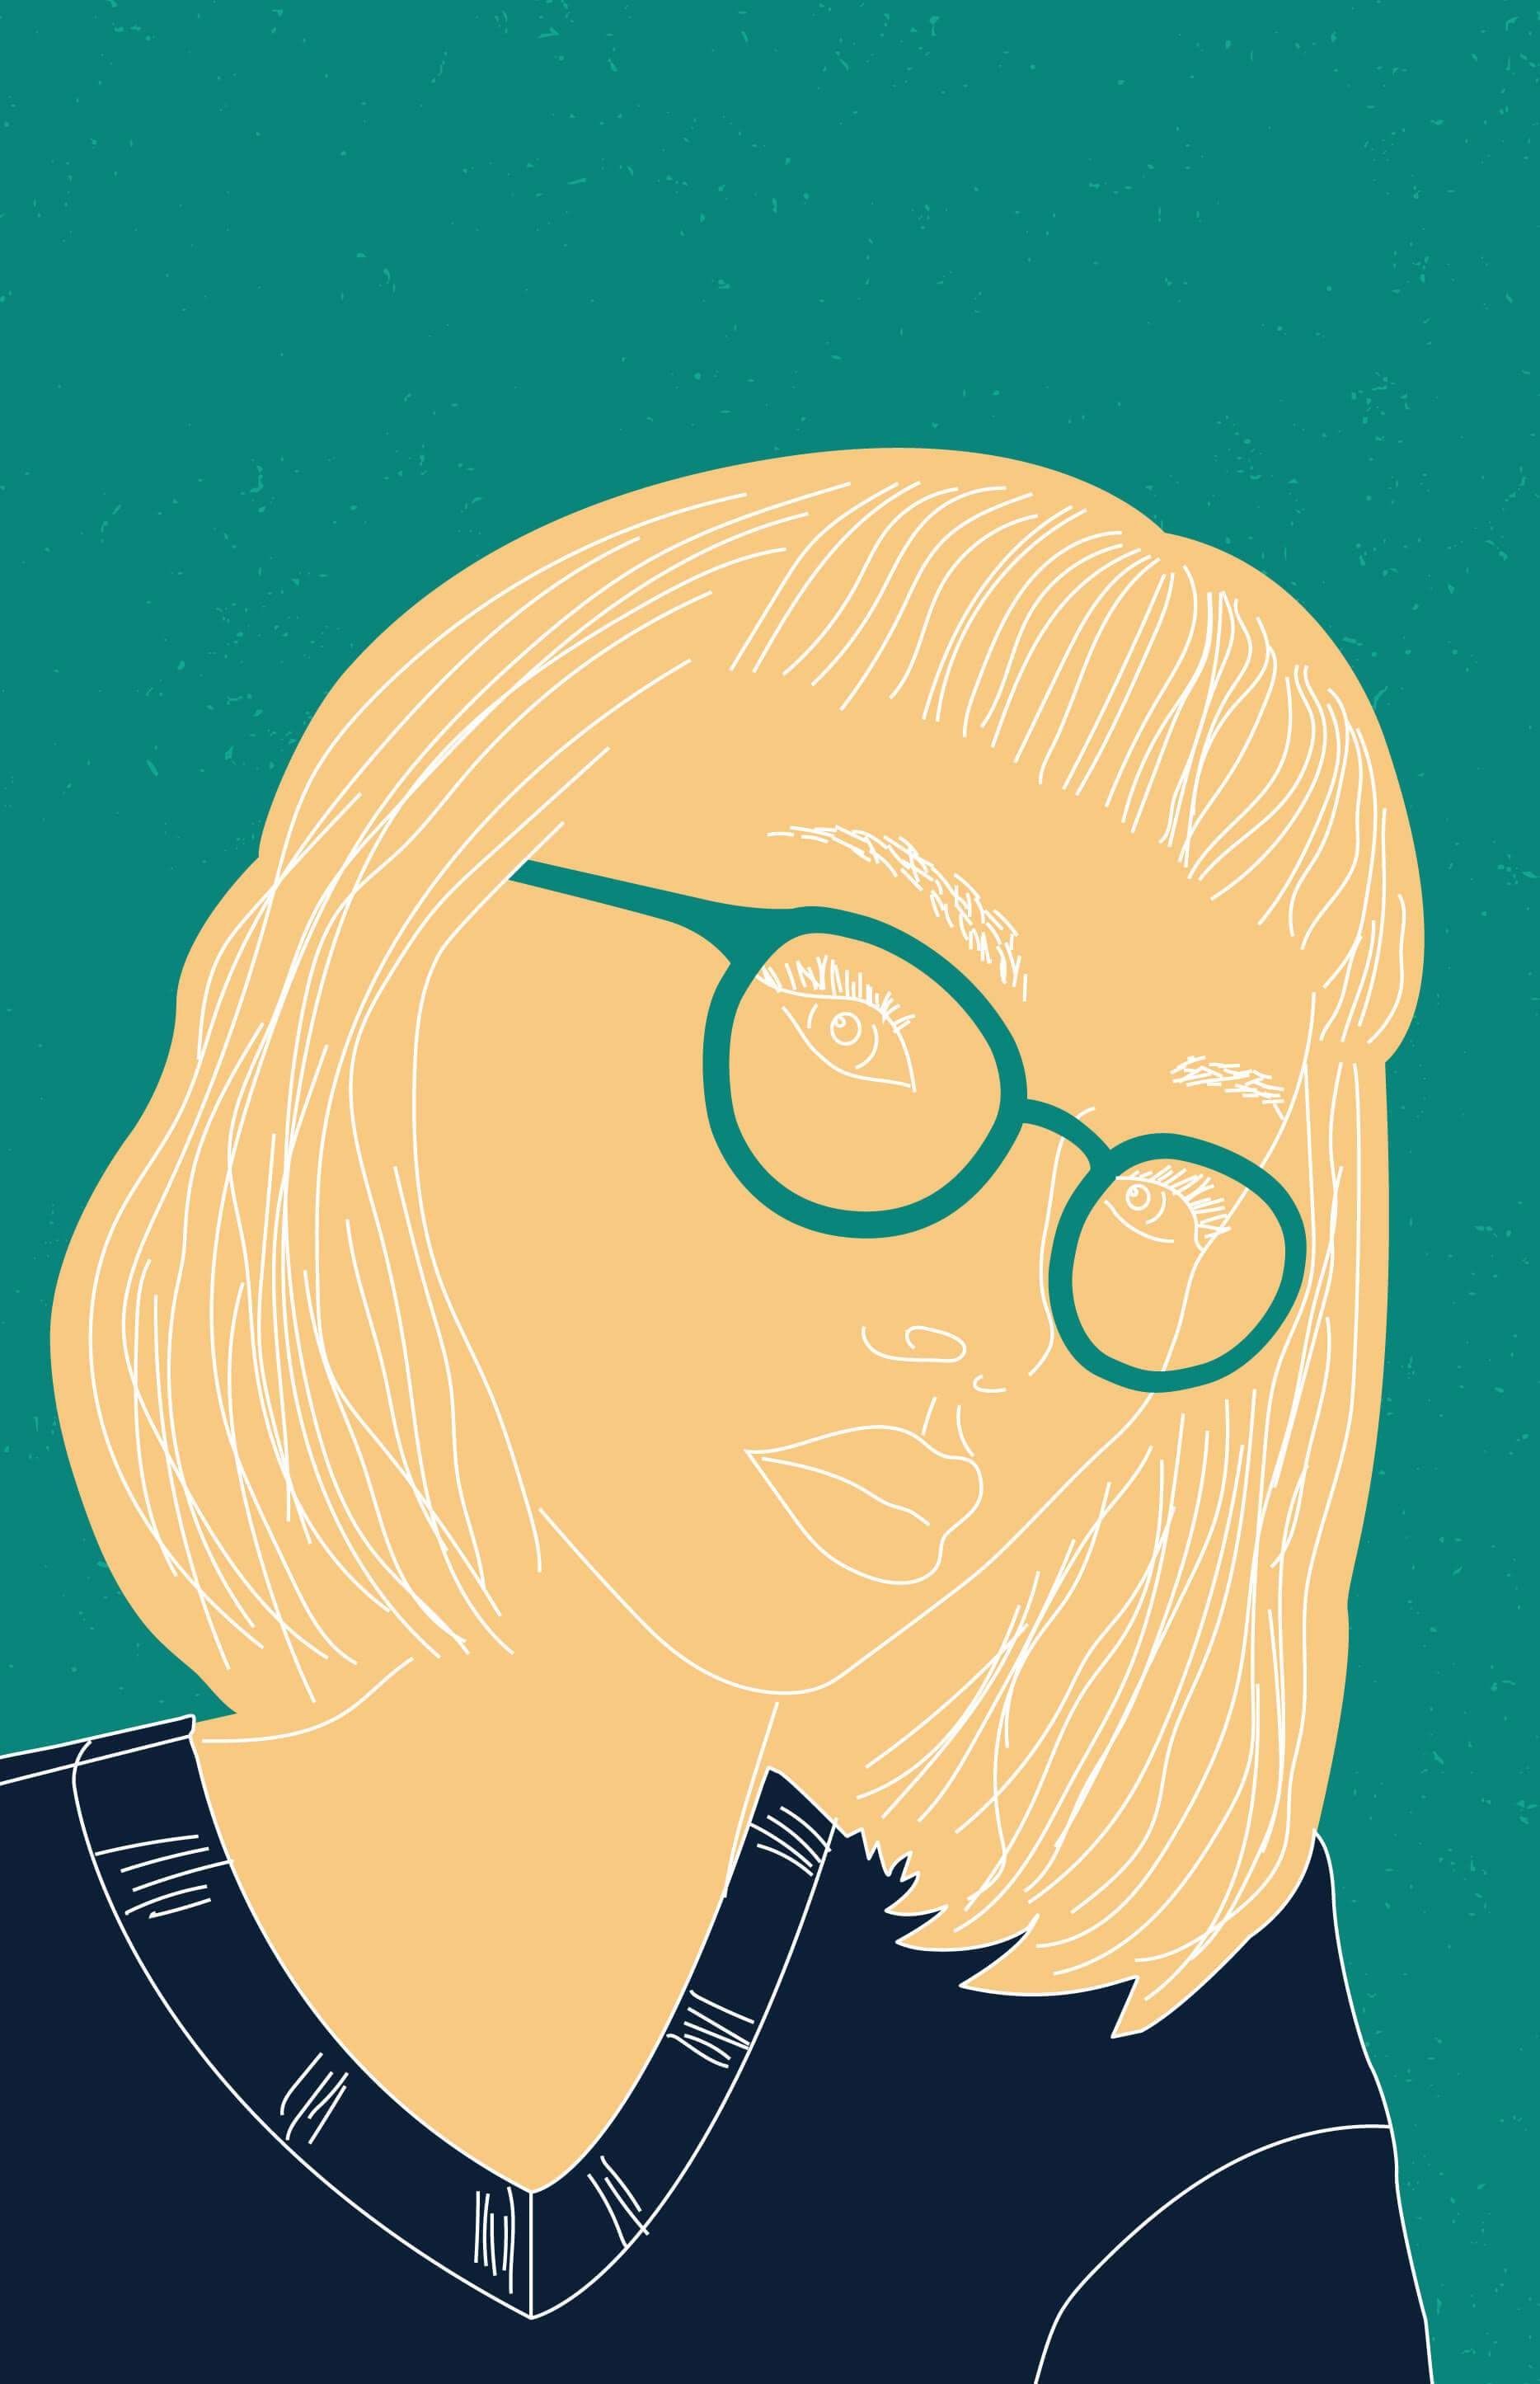 glasses girl digital illustration new zealand